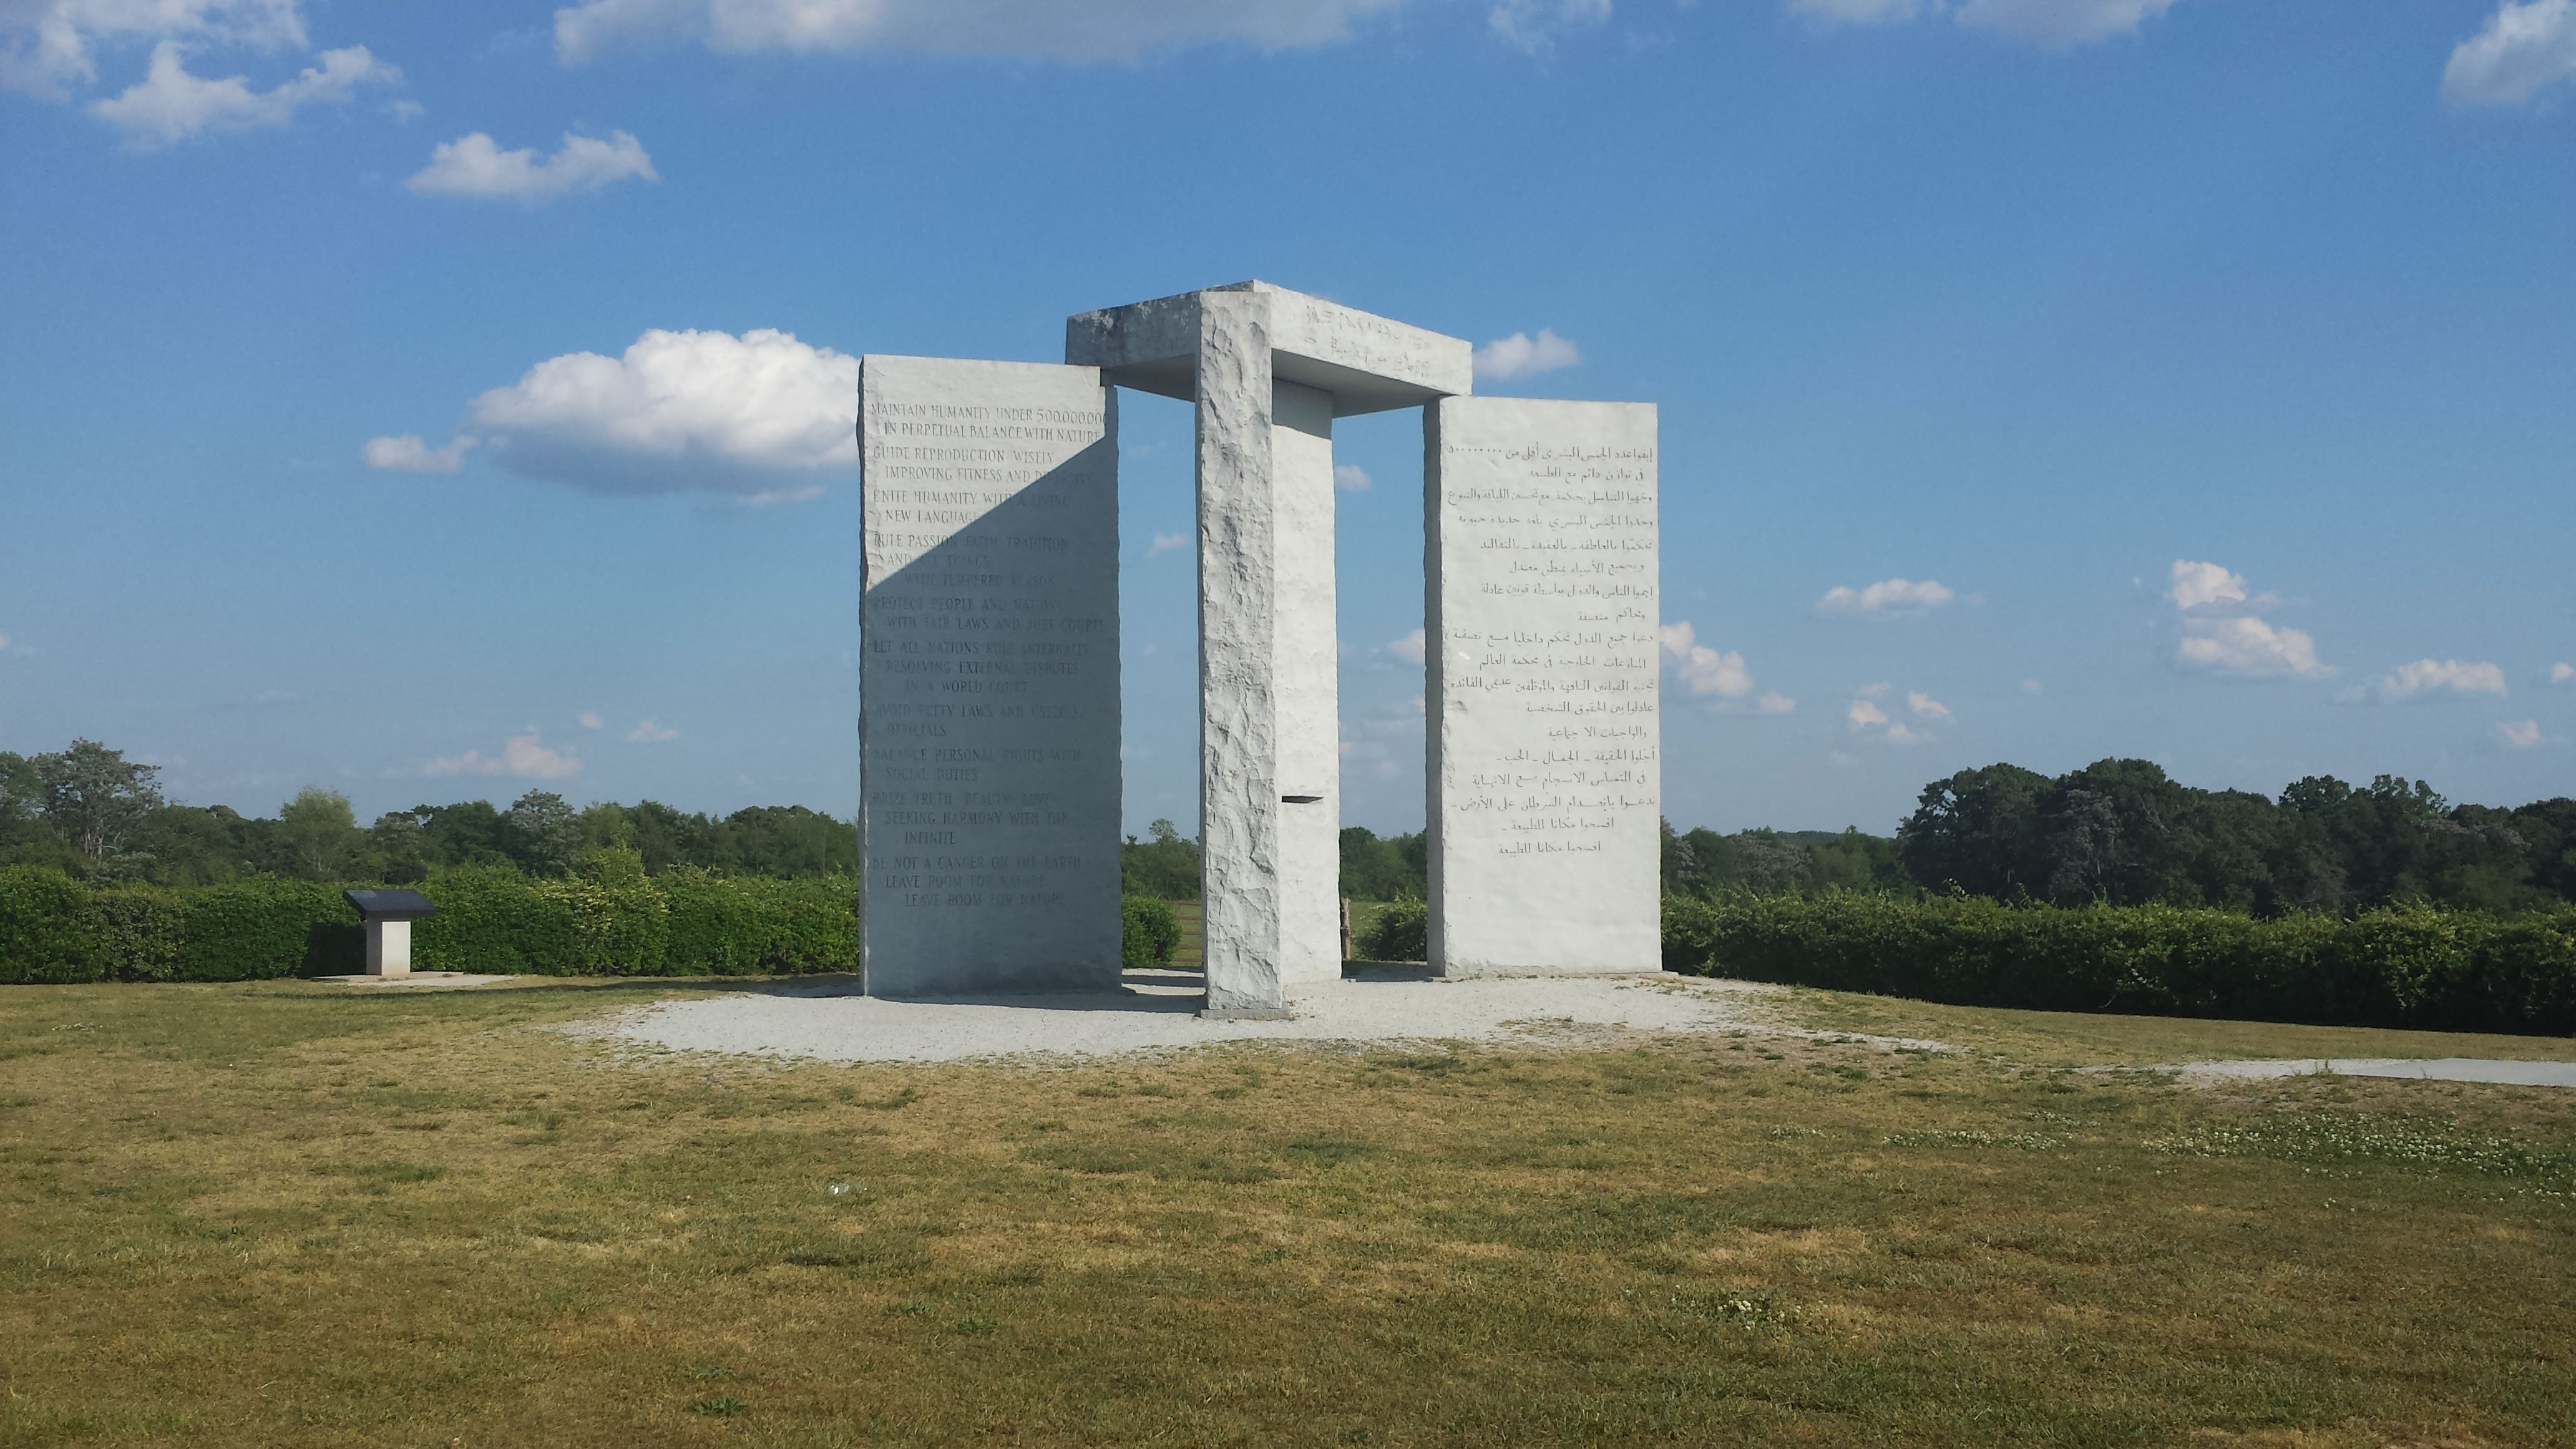 What are the Georgia Guidestones? Pictures and Facts | Student Handouts